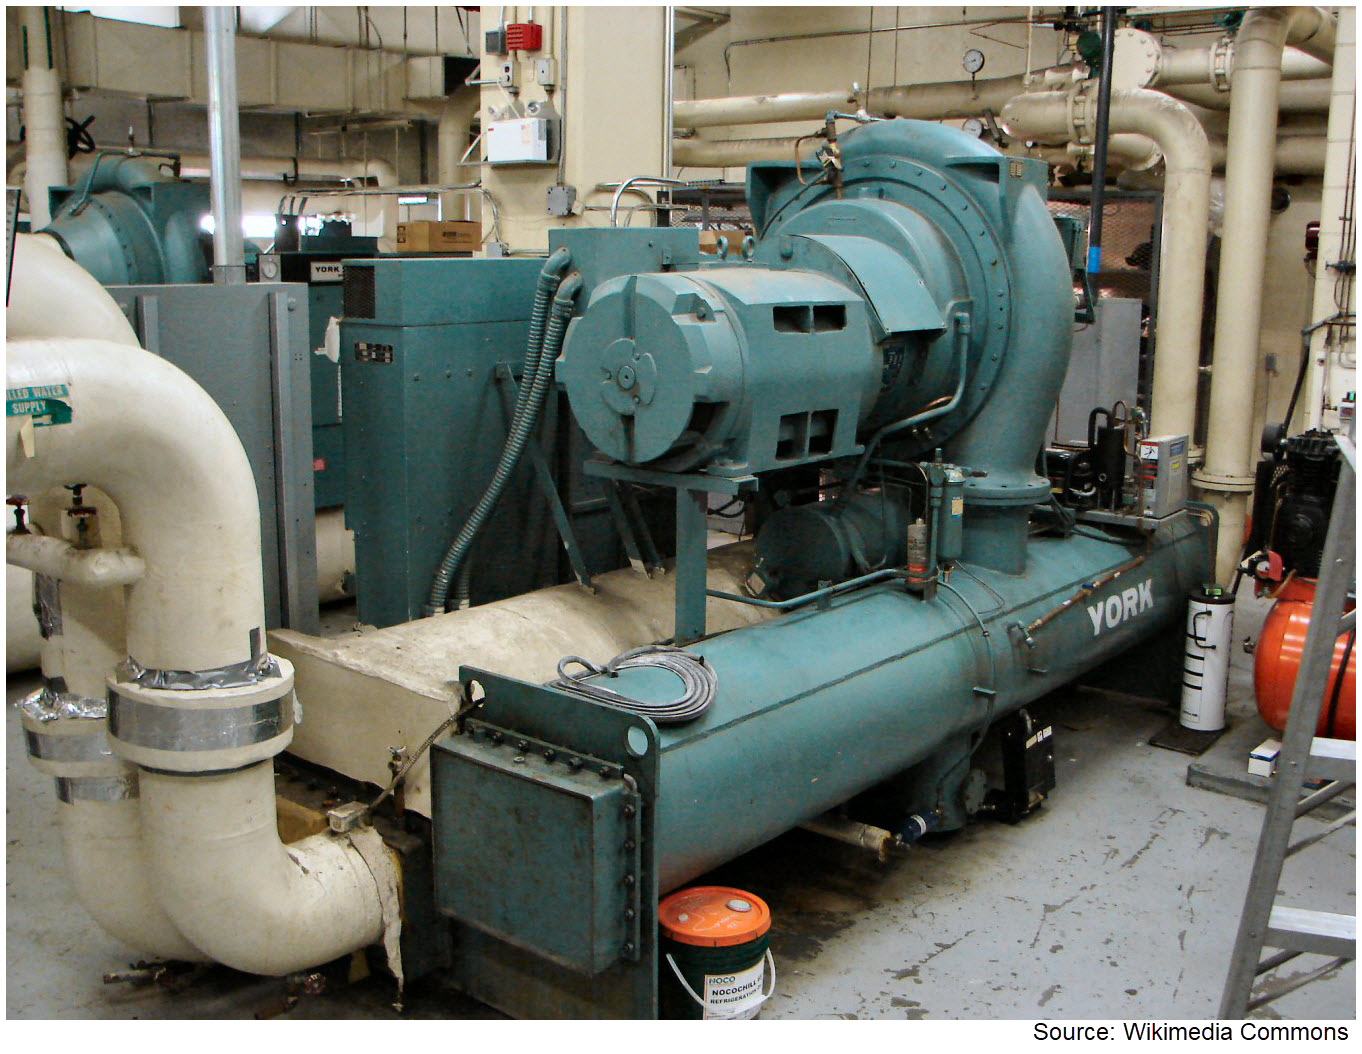 This is a picture of chiller equipment in a large utility room.